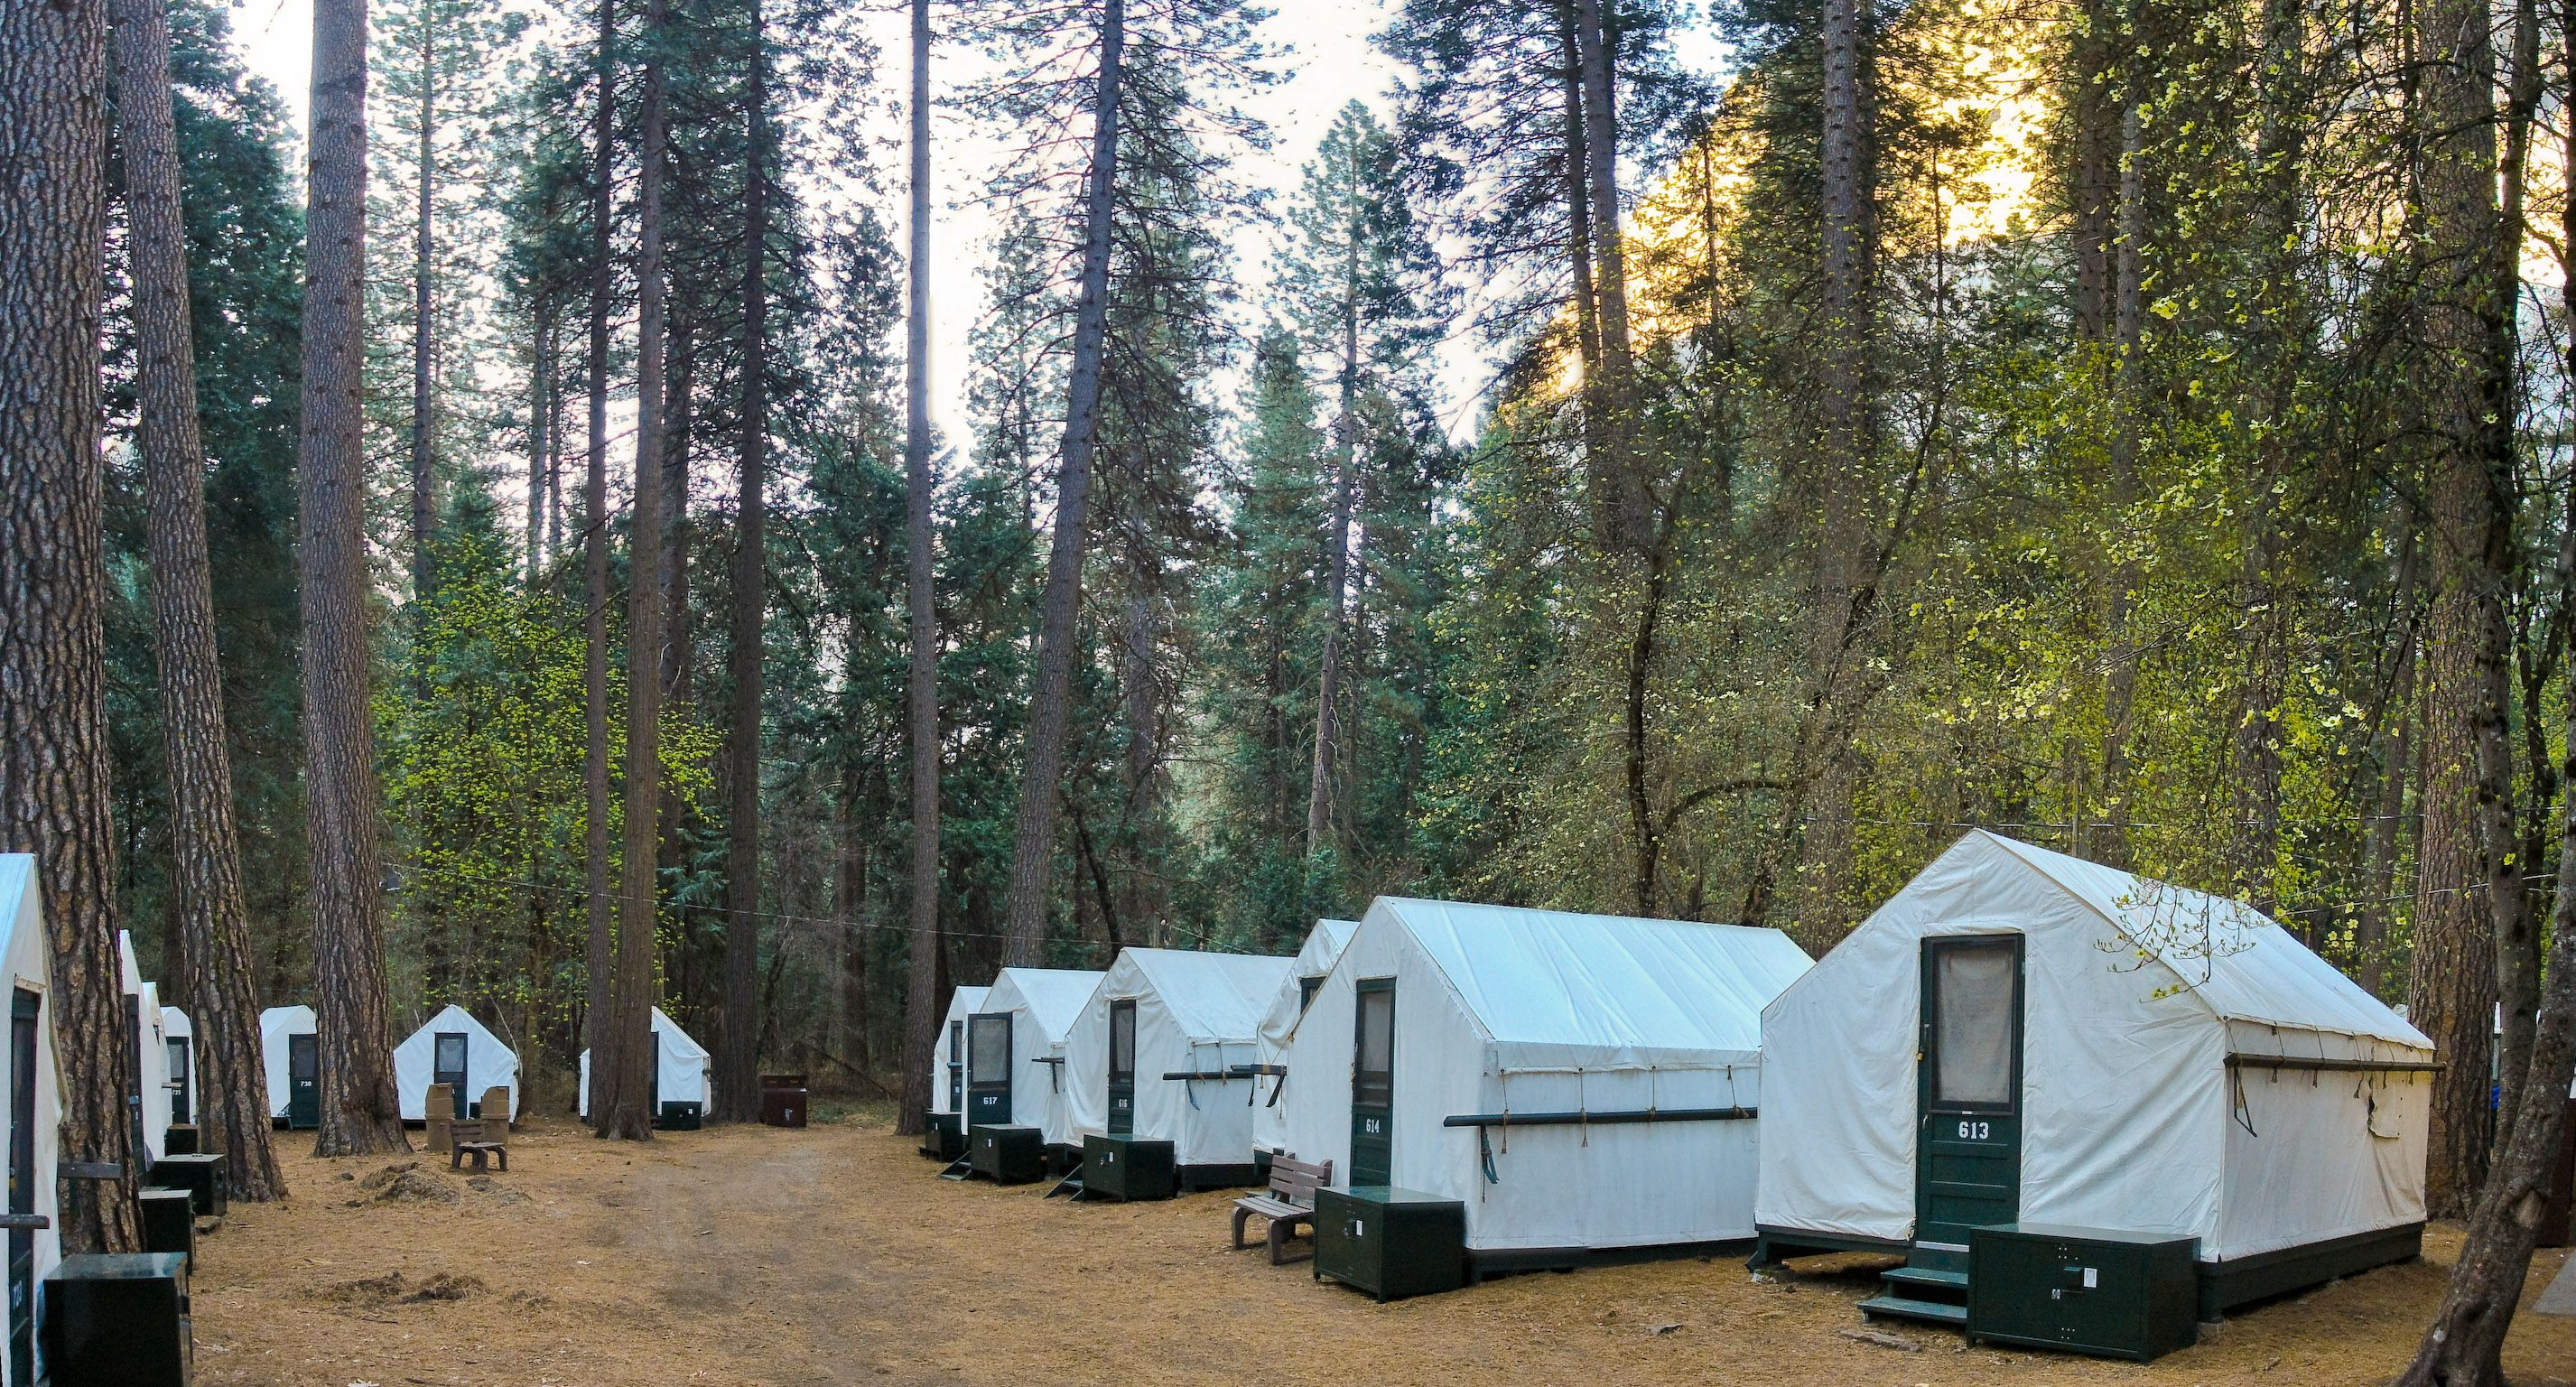 Canvas tents in Curry Village in Yosemite National Park. & Half Dome Curry Village Yosemite glamping | Glamping Trips ...